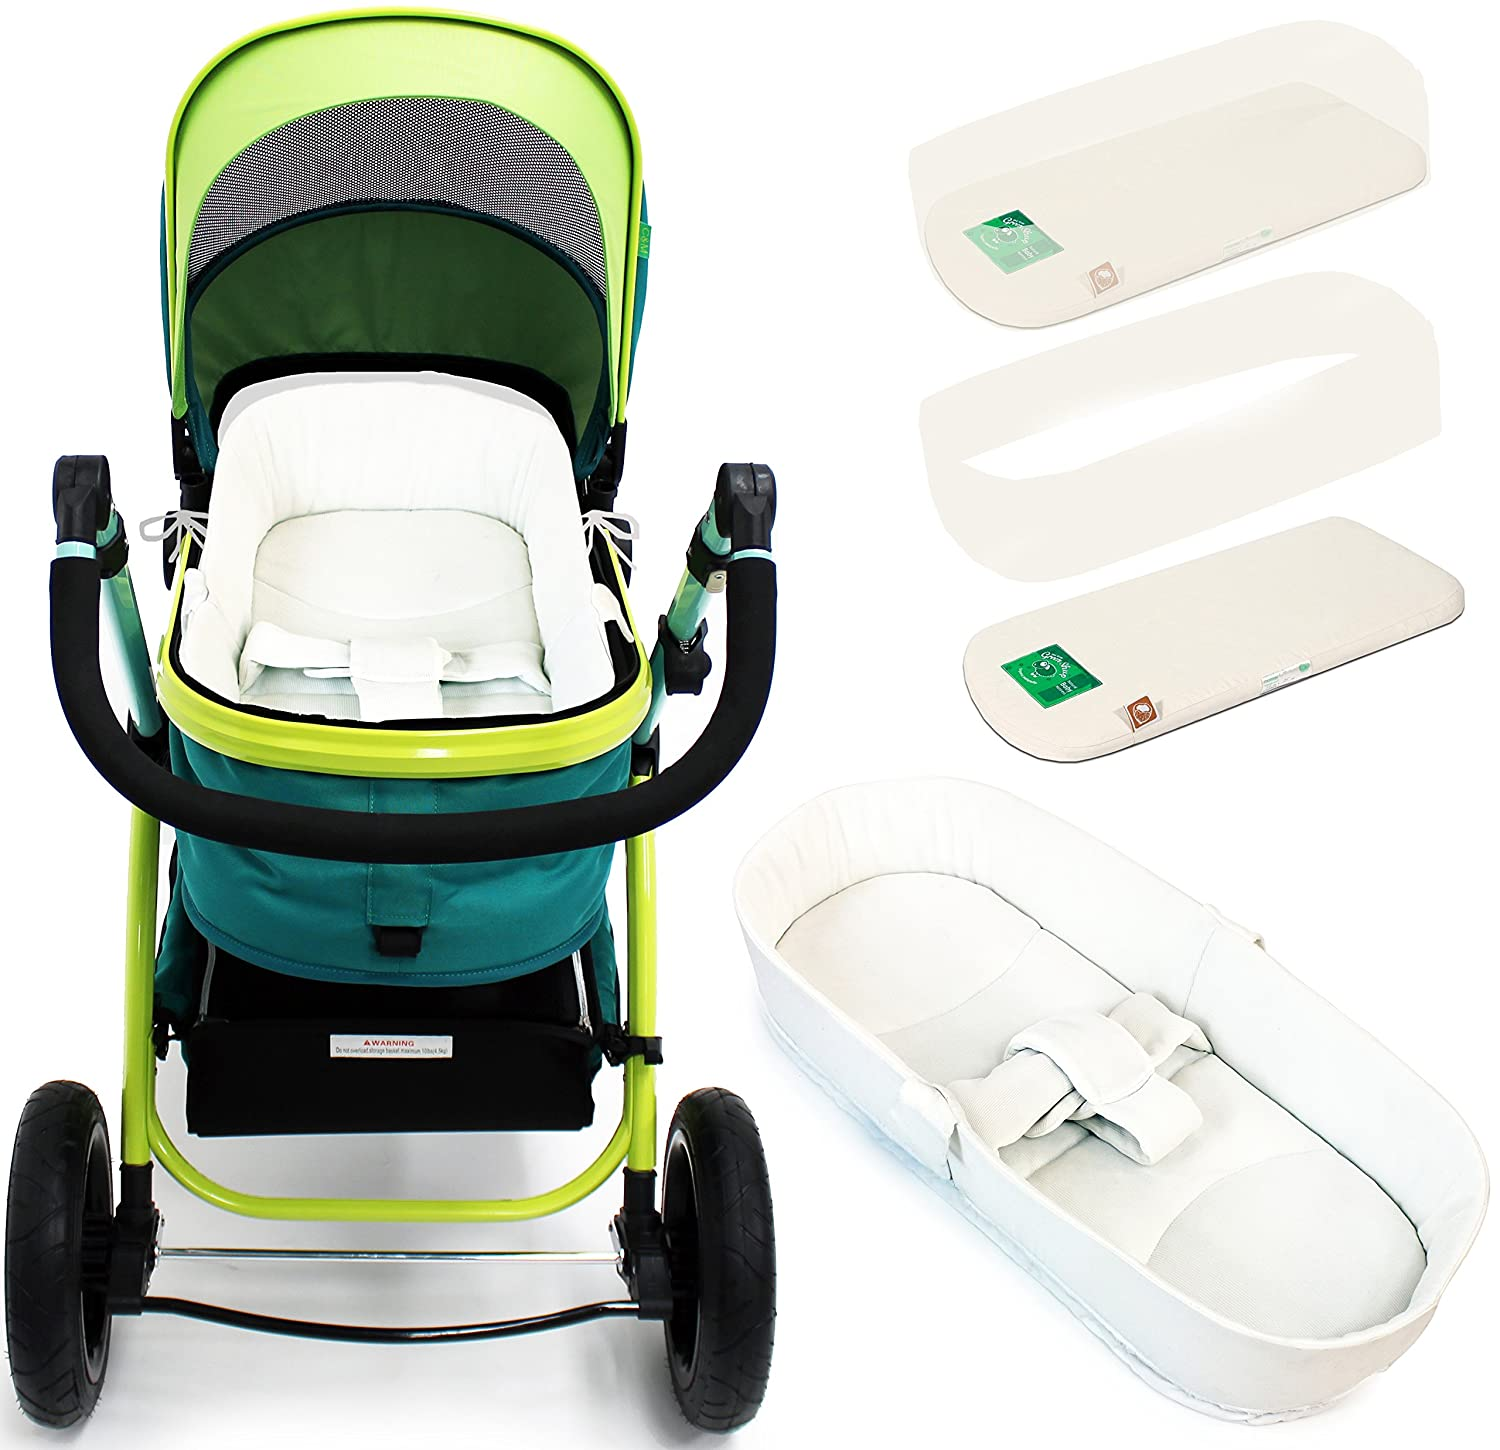 iSafe Luxury Beddin For Pram Travel System